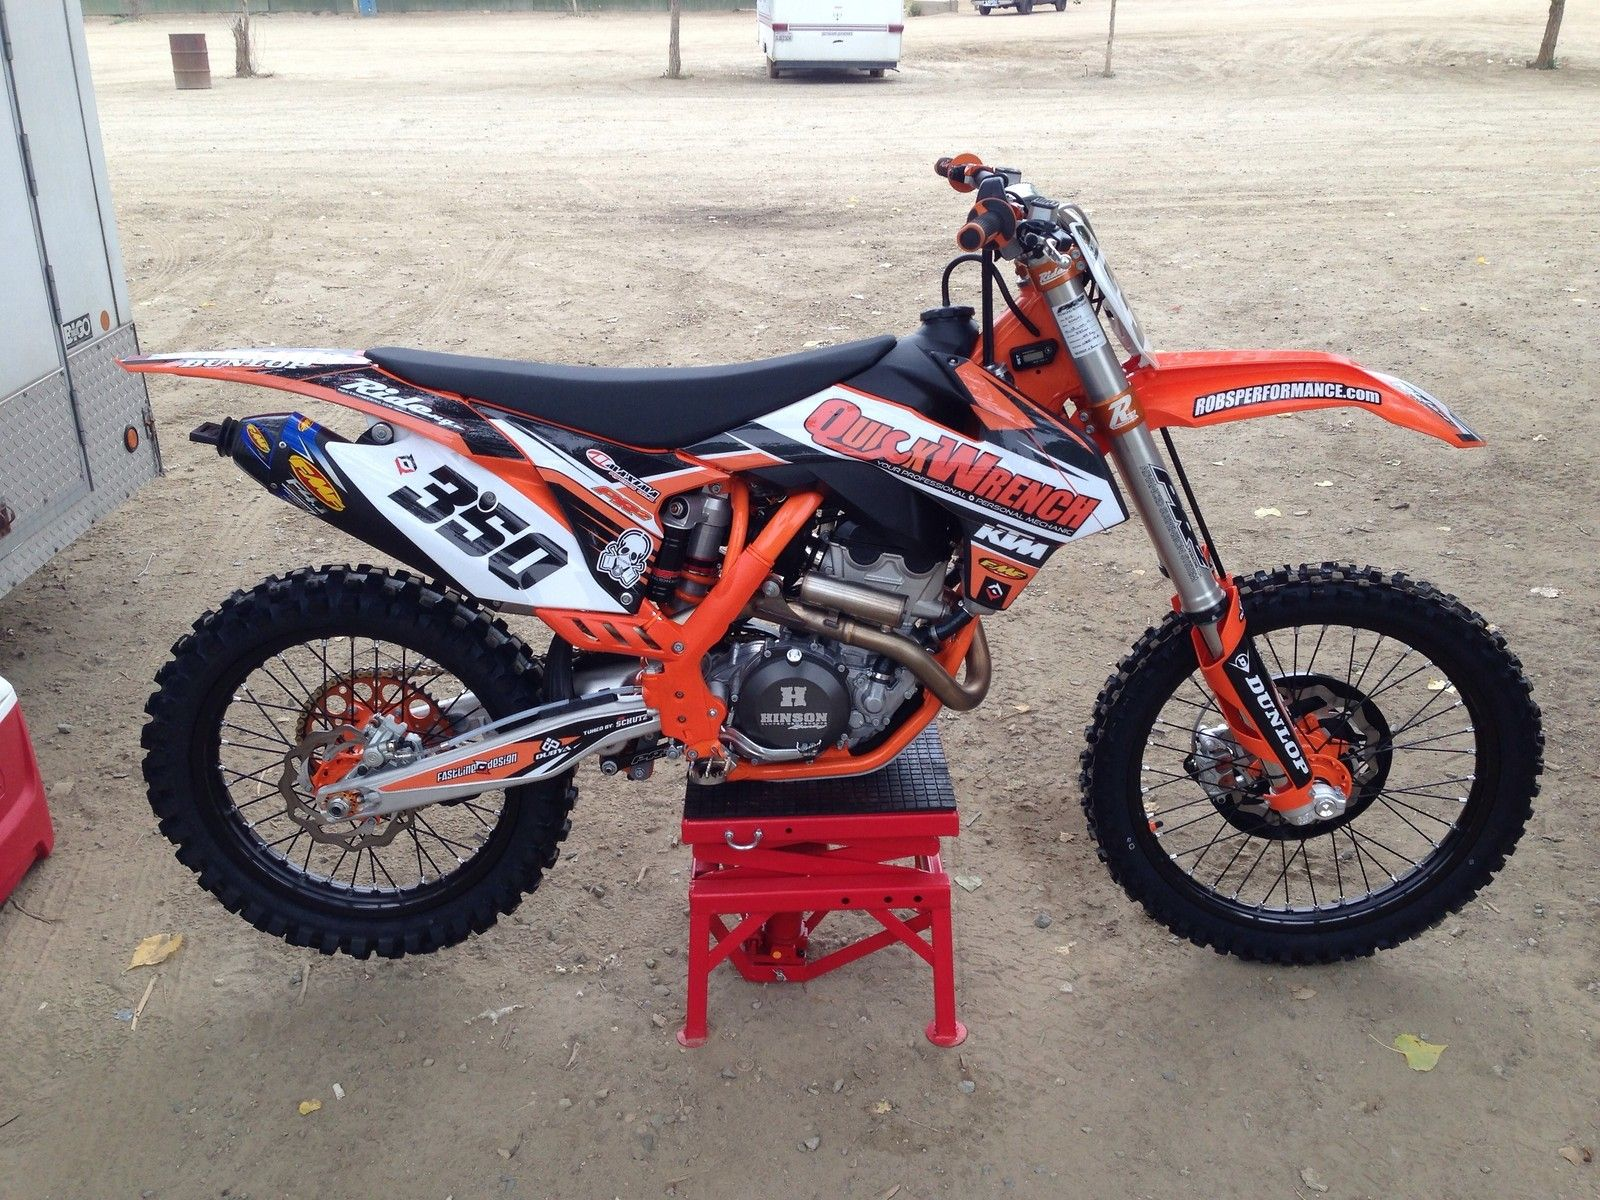 Project quick wrench 350sxf with duel fuel injection quickwrench s bike check vital mx